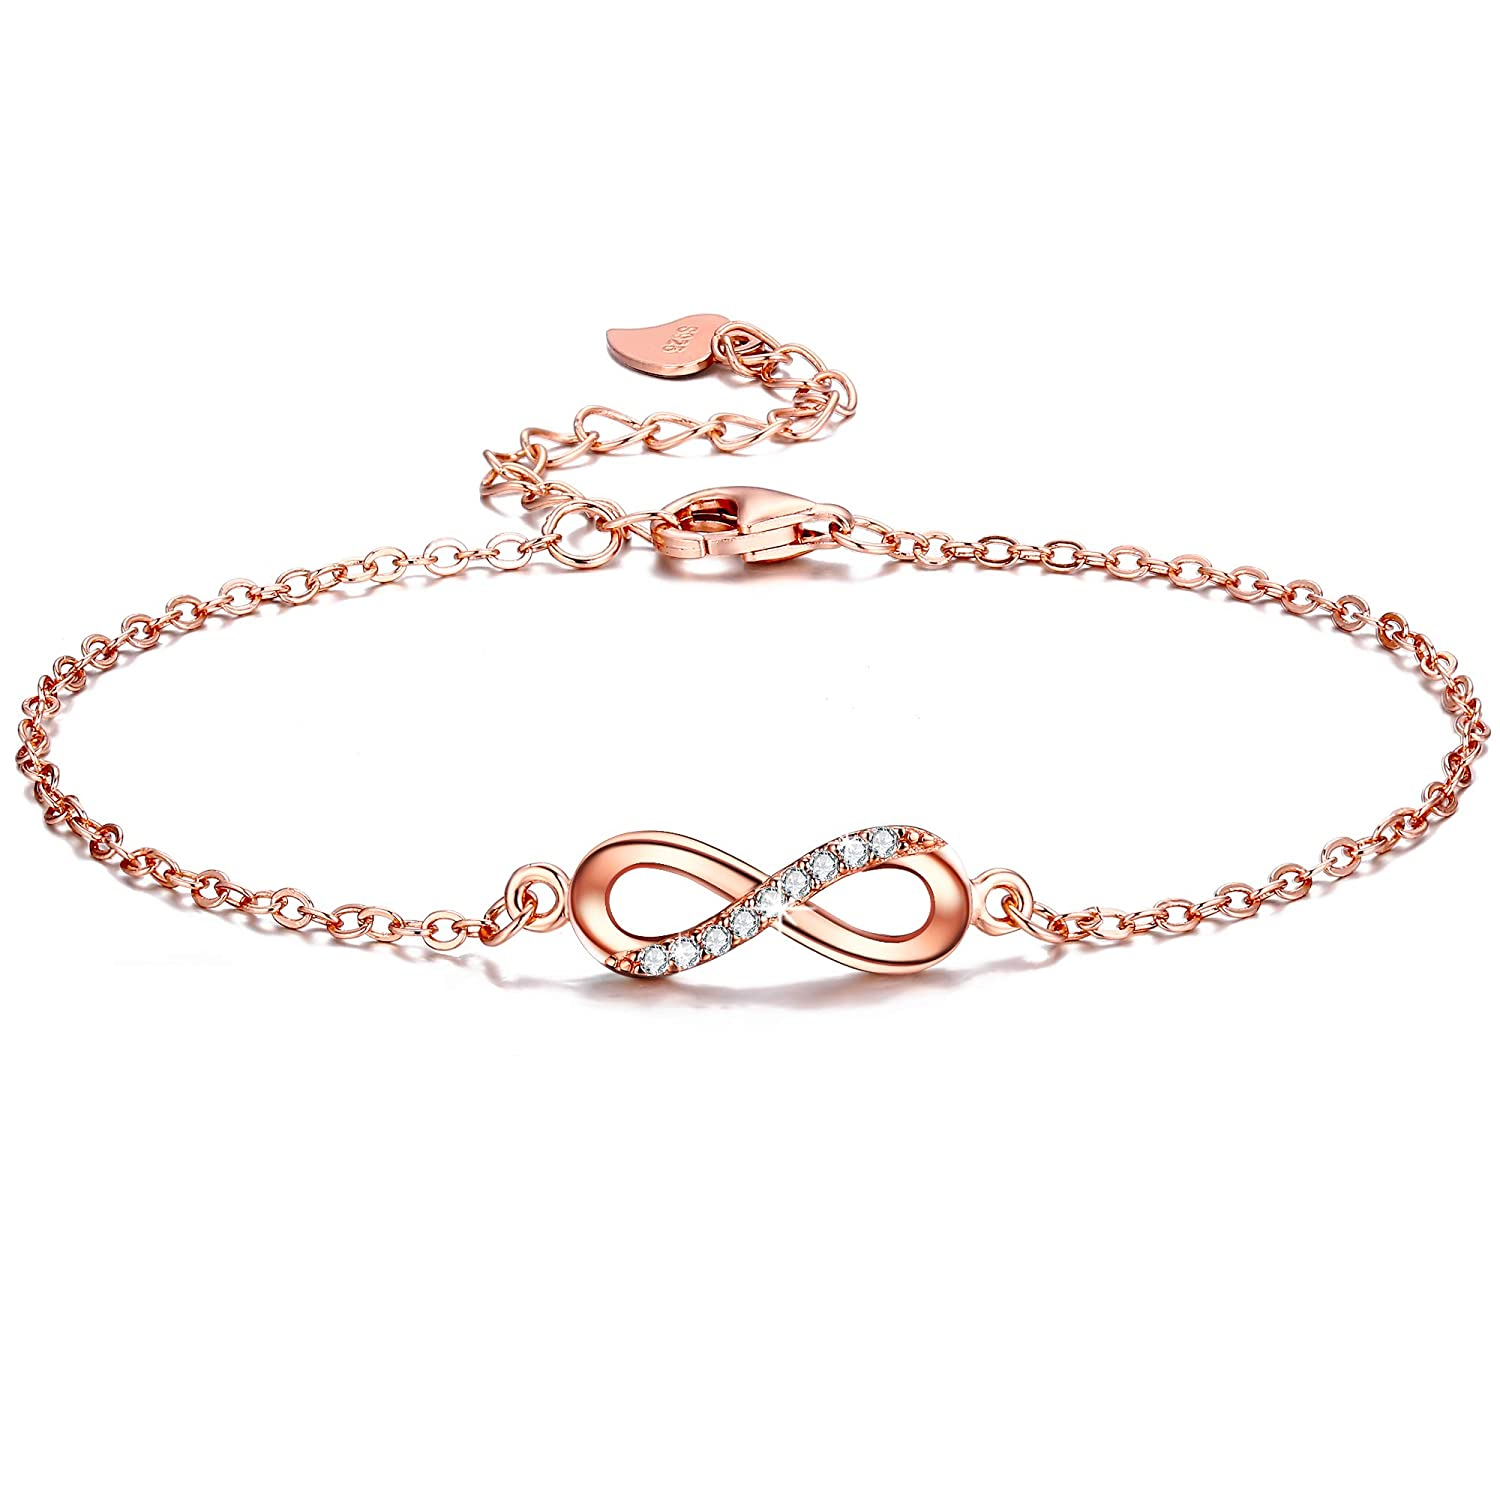 016ba8e8a F.ZENI Women Link Bracelet 925 Sterling Silver Infinity Forever Love Accent Adjustable  Charm Chain with Gift Box,6.5-7.7 Inch,Plating 18k White Gold and ...